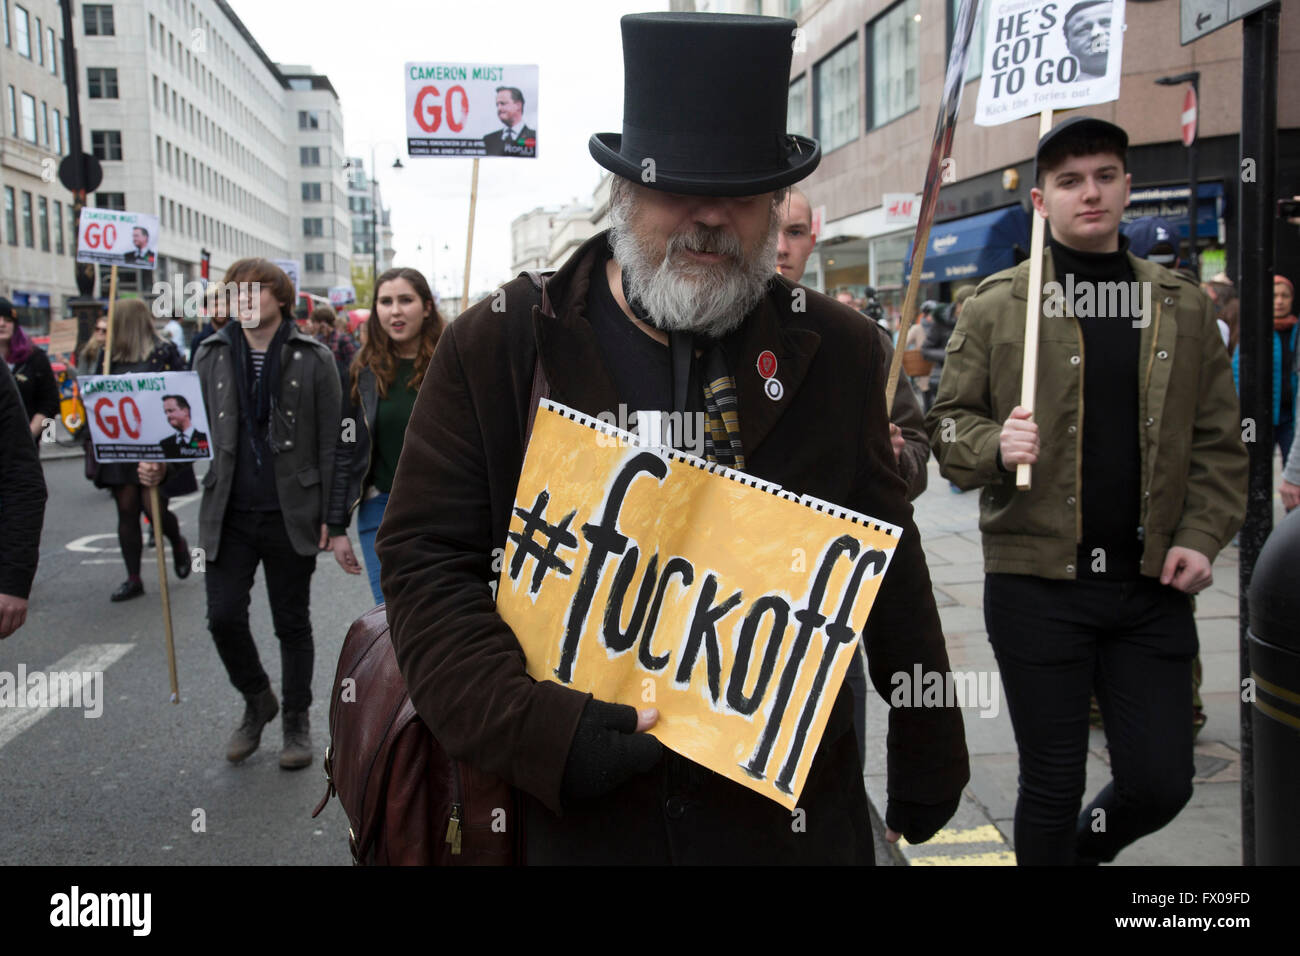 London, UK. 09th Apr, 2016. Demonstration goes on the move as protesters gather against David Cameron's links - Stock Image